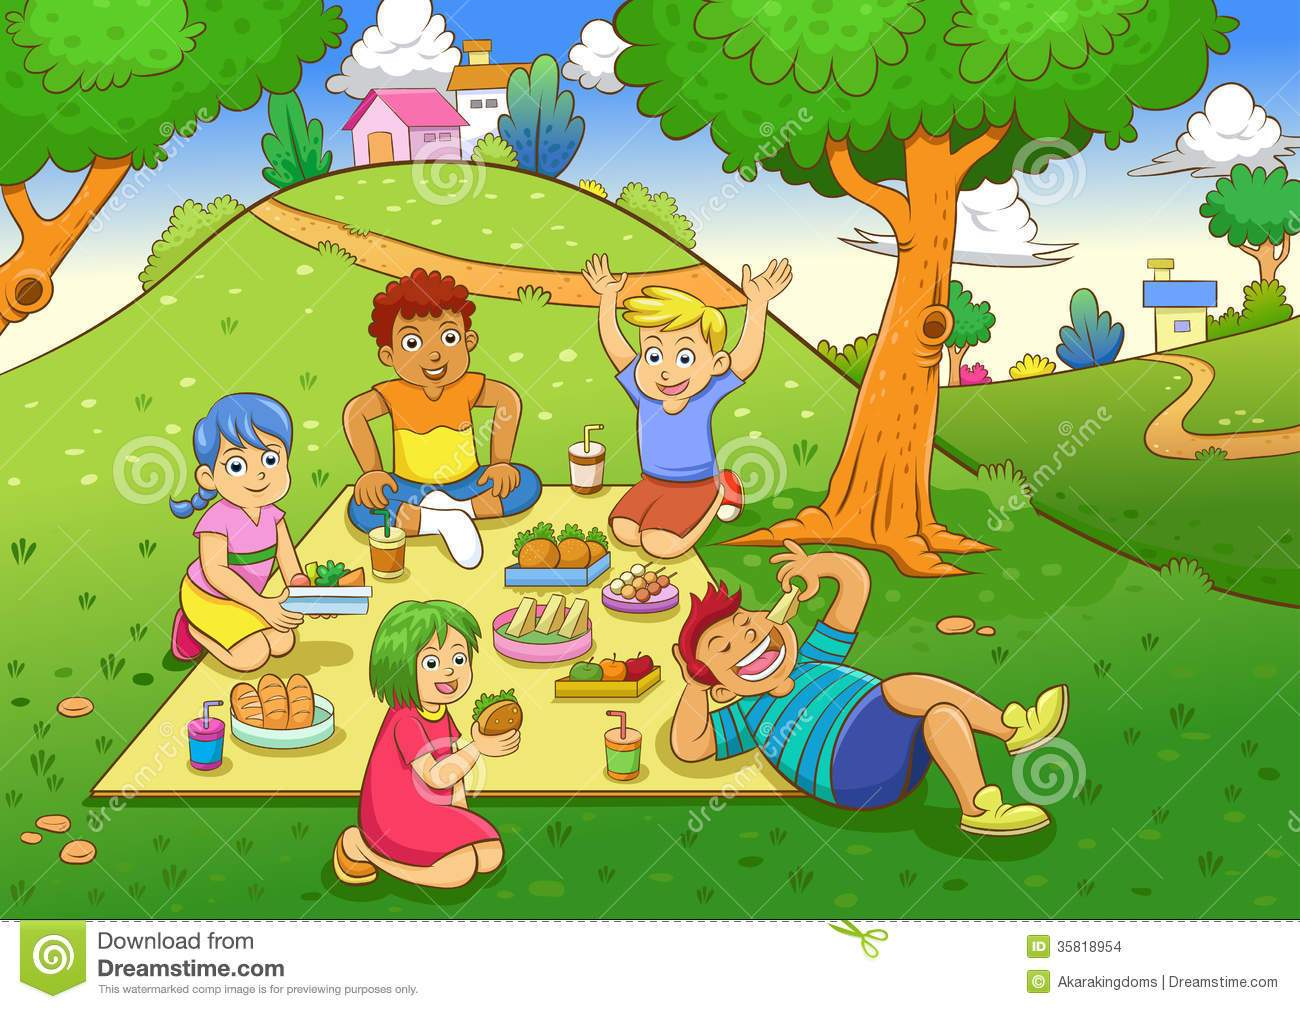 Clipart kids on a picnic image royalty free download Picnic park clipart 7 » Clipart Portal image royalty free download